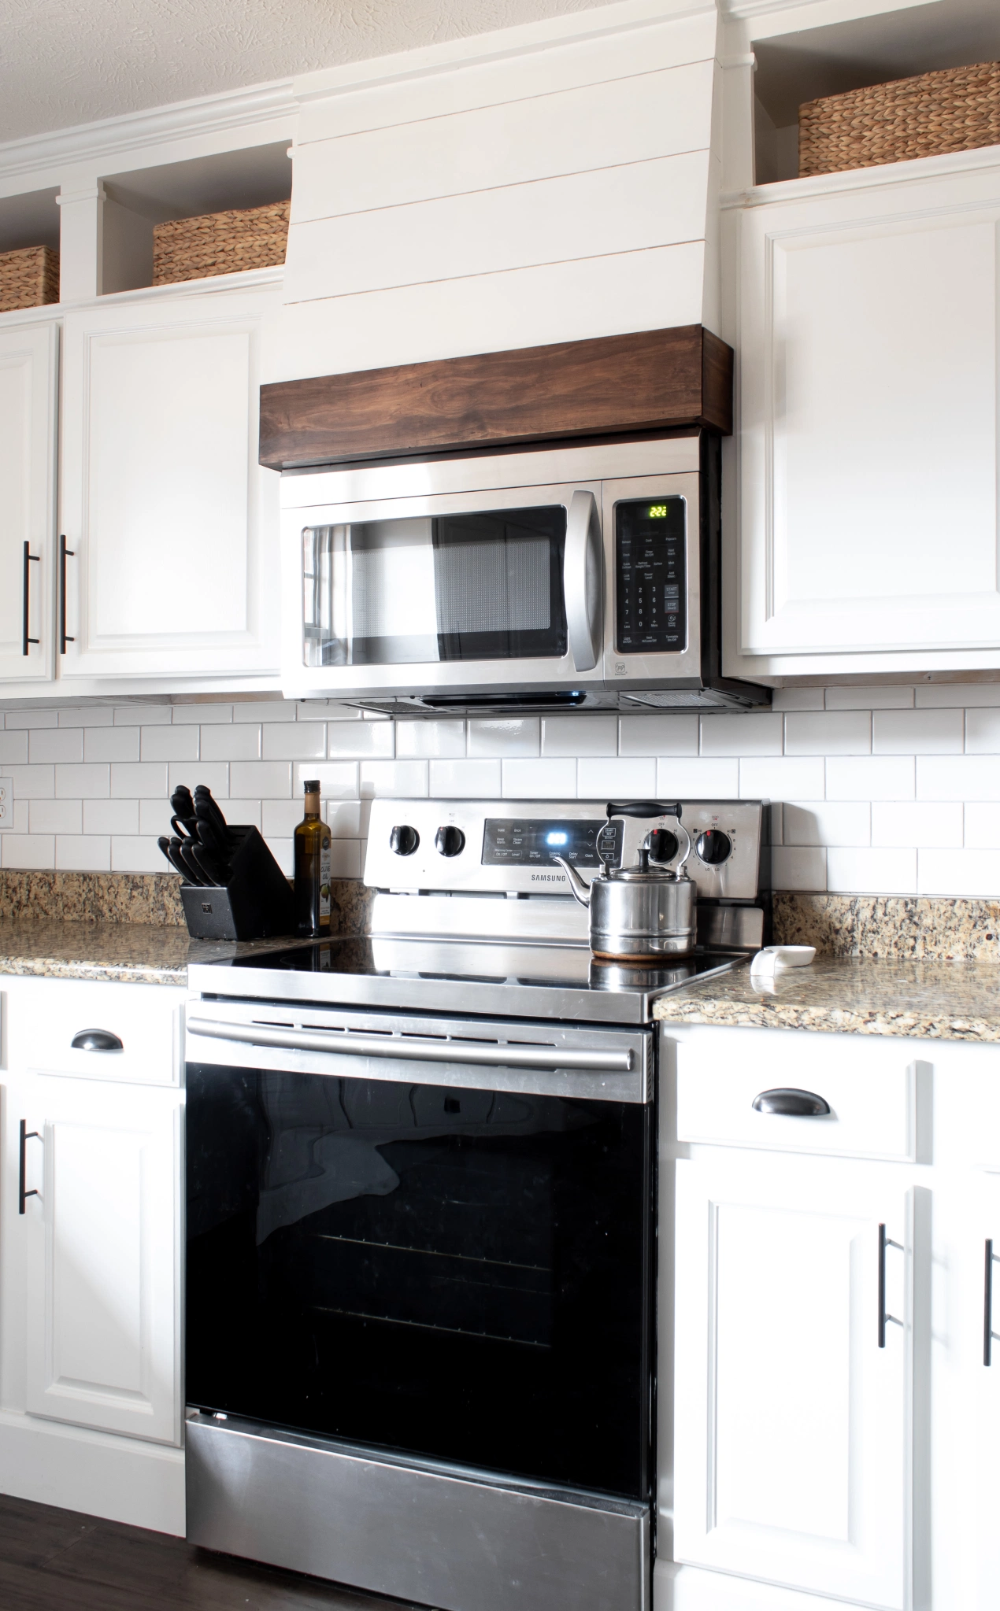 DIY FAUX VENT HOOD – With Love, Mercedes #farmhousekitchen #modernfarmhousekitchen #whitekitchen #benjaminmoorewhitedove #fauxventhood #shiplapventhood #venthoodovermicrowave #microwaveventhood #shiplapkitchen #diyventhood #diykitchen #kitchenmakeover #kitchenideas #farmhousekitchenideas #diyfauxventhood